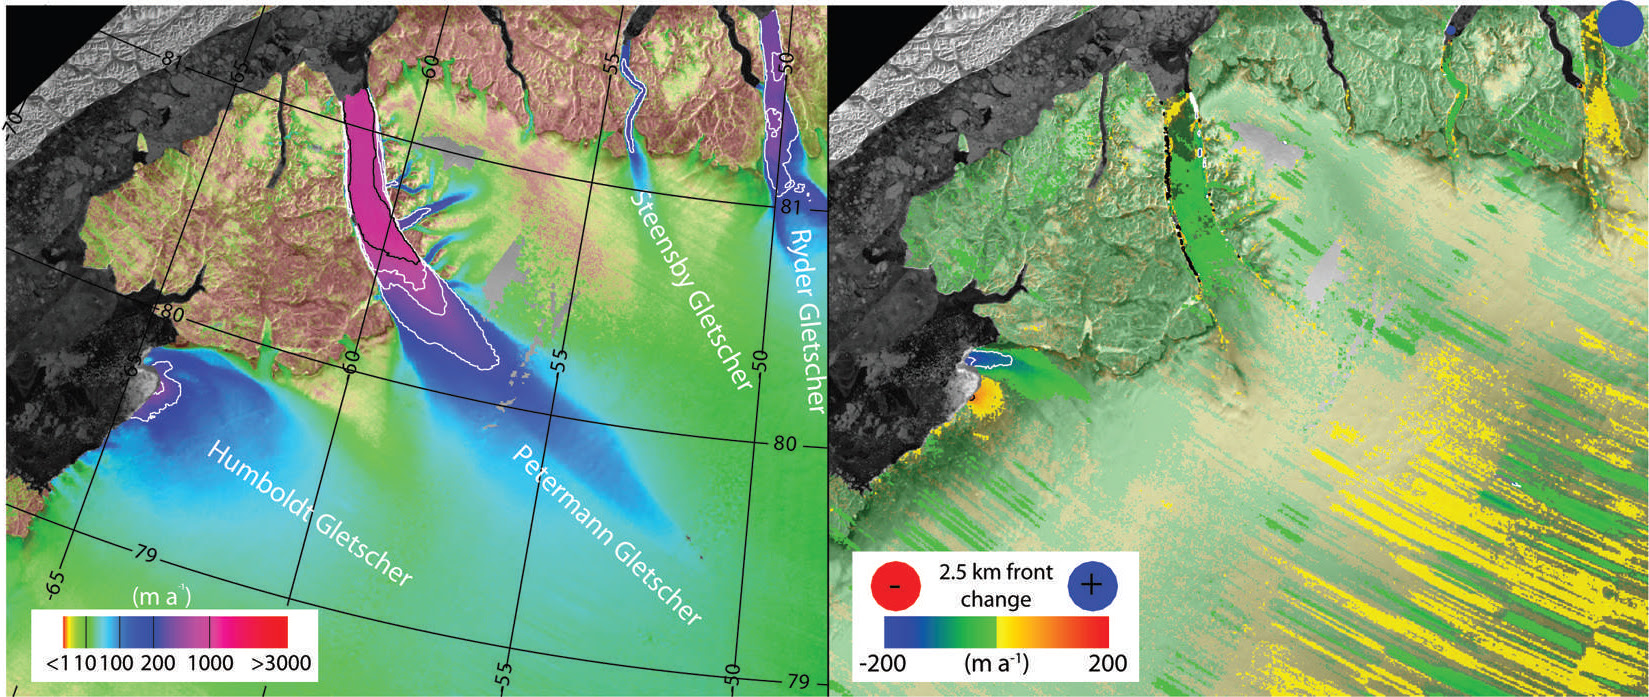 Left panel denotes ice velocities; the right panel shows changes in velocities